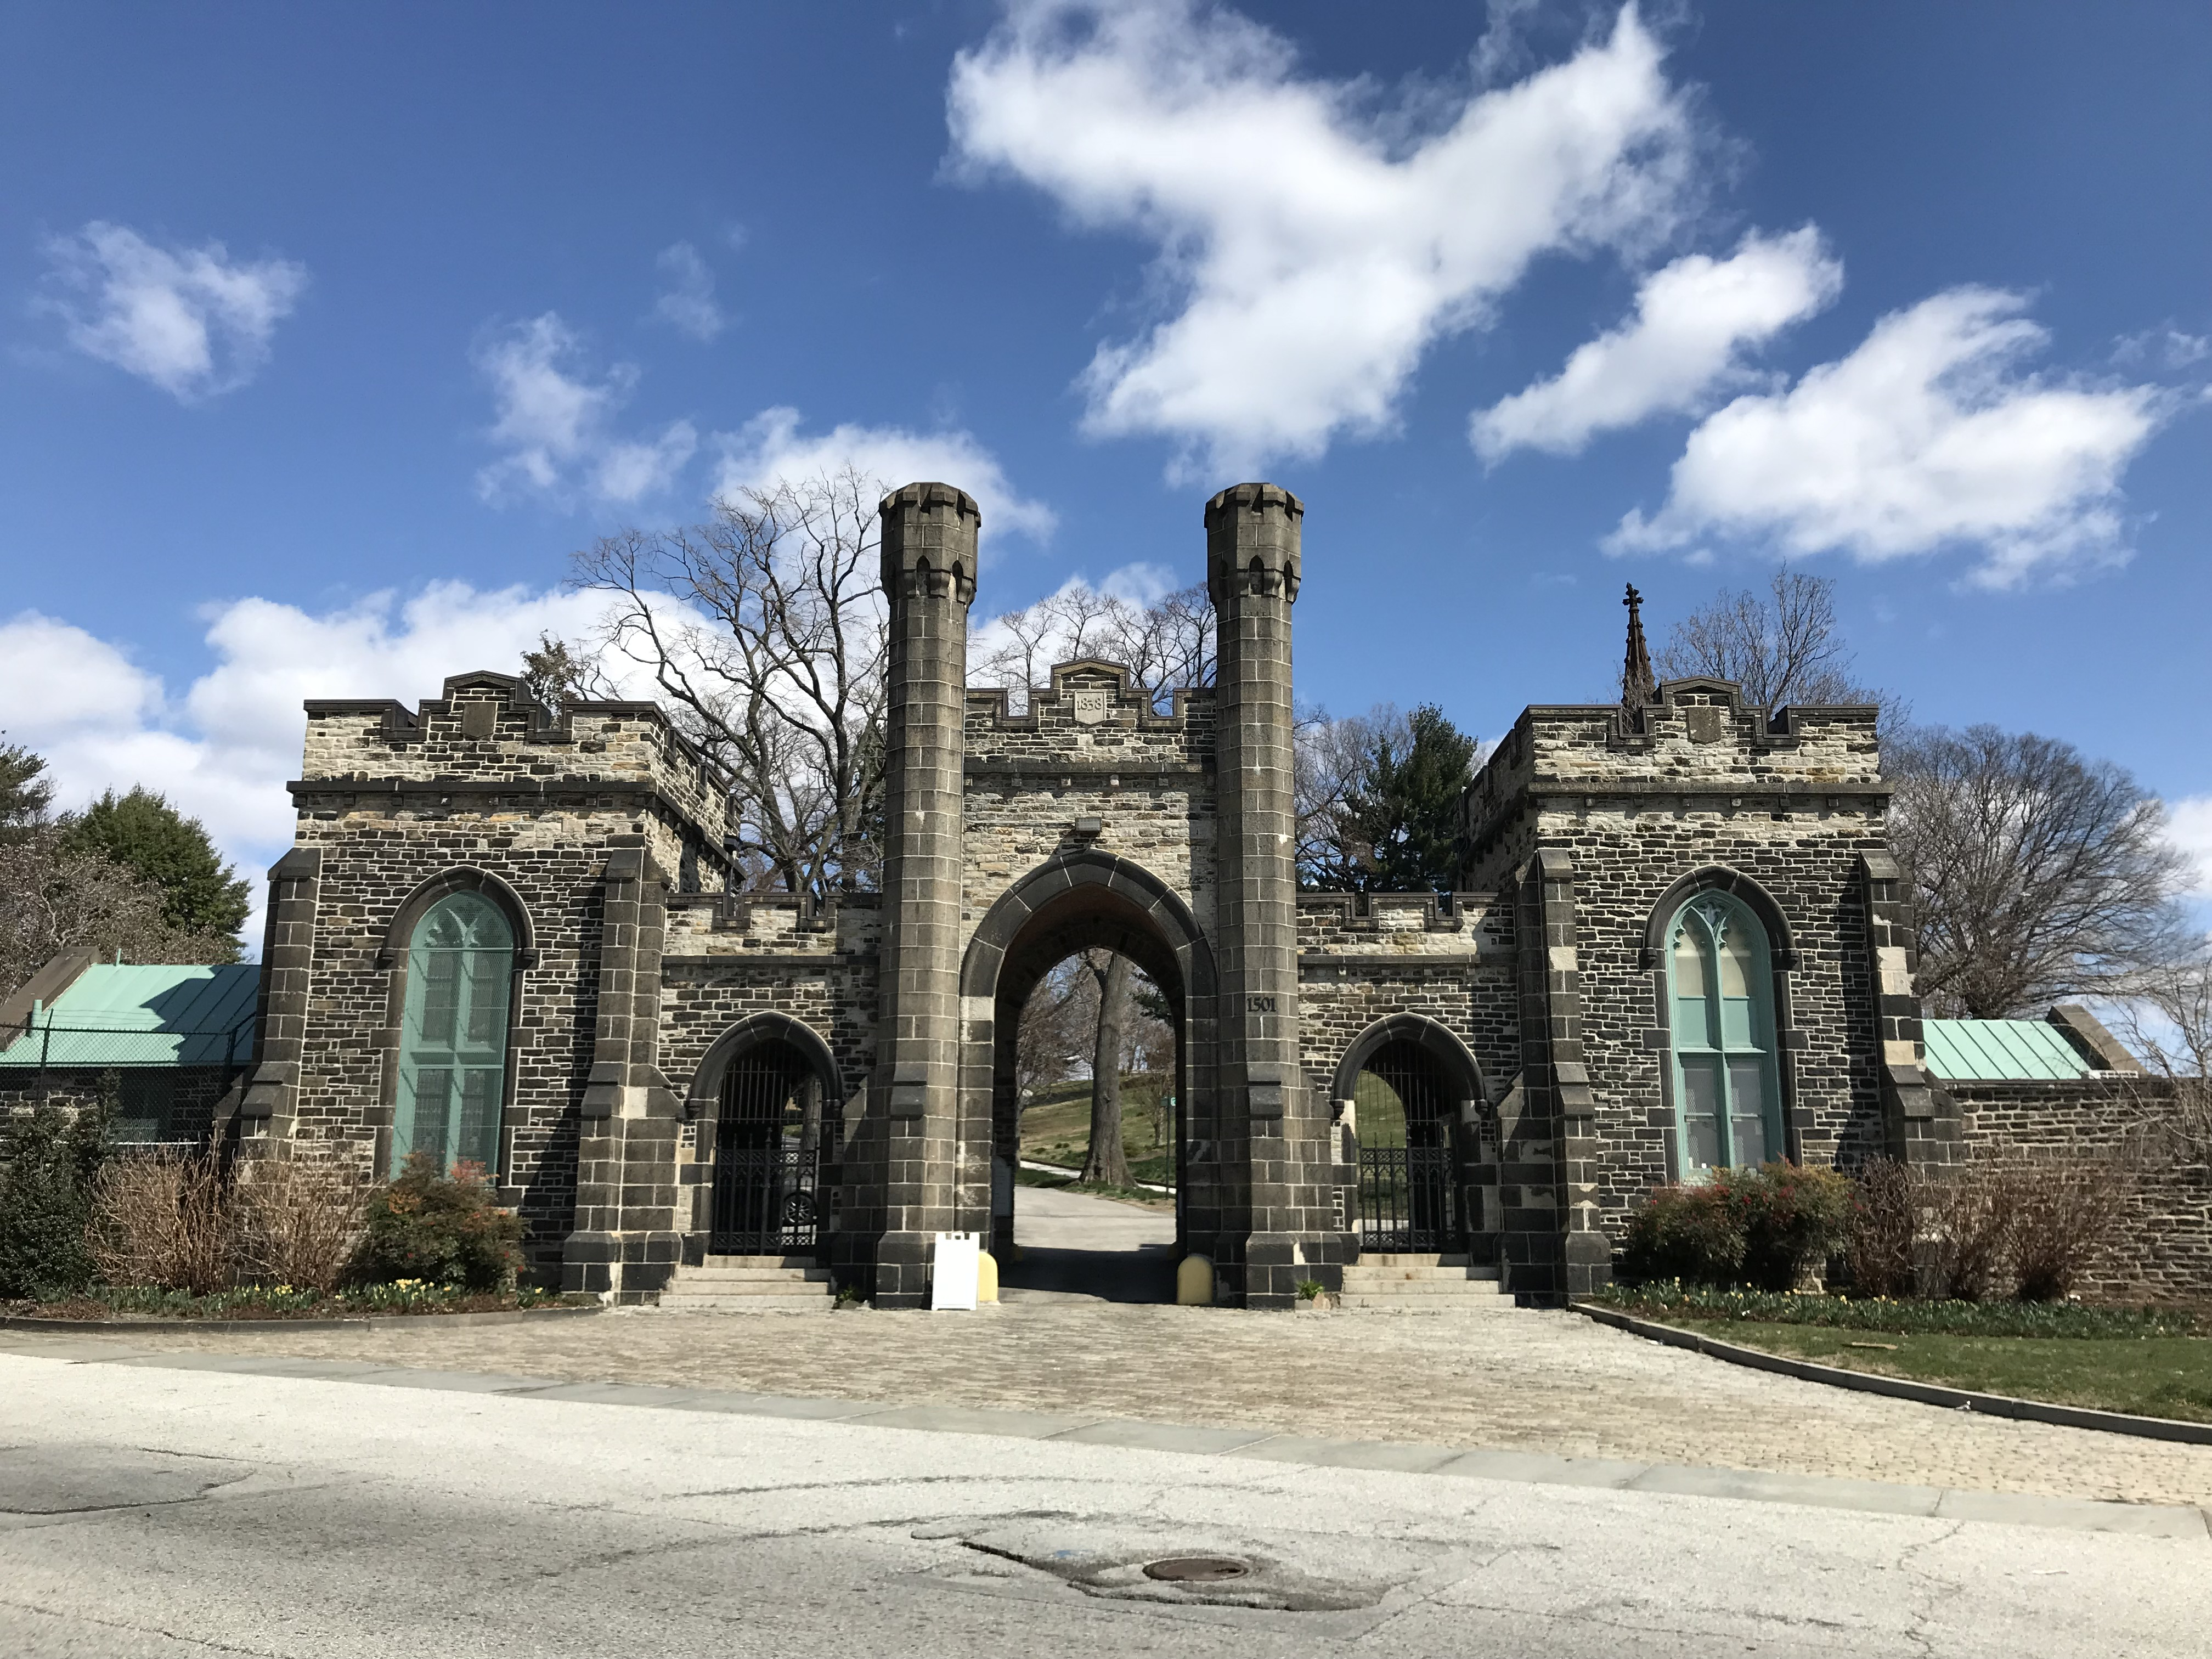 Gatehouse, greenmount cemetery, 1501 greenmount avenue, baltimore, md 21202 photo